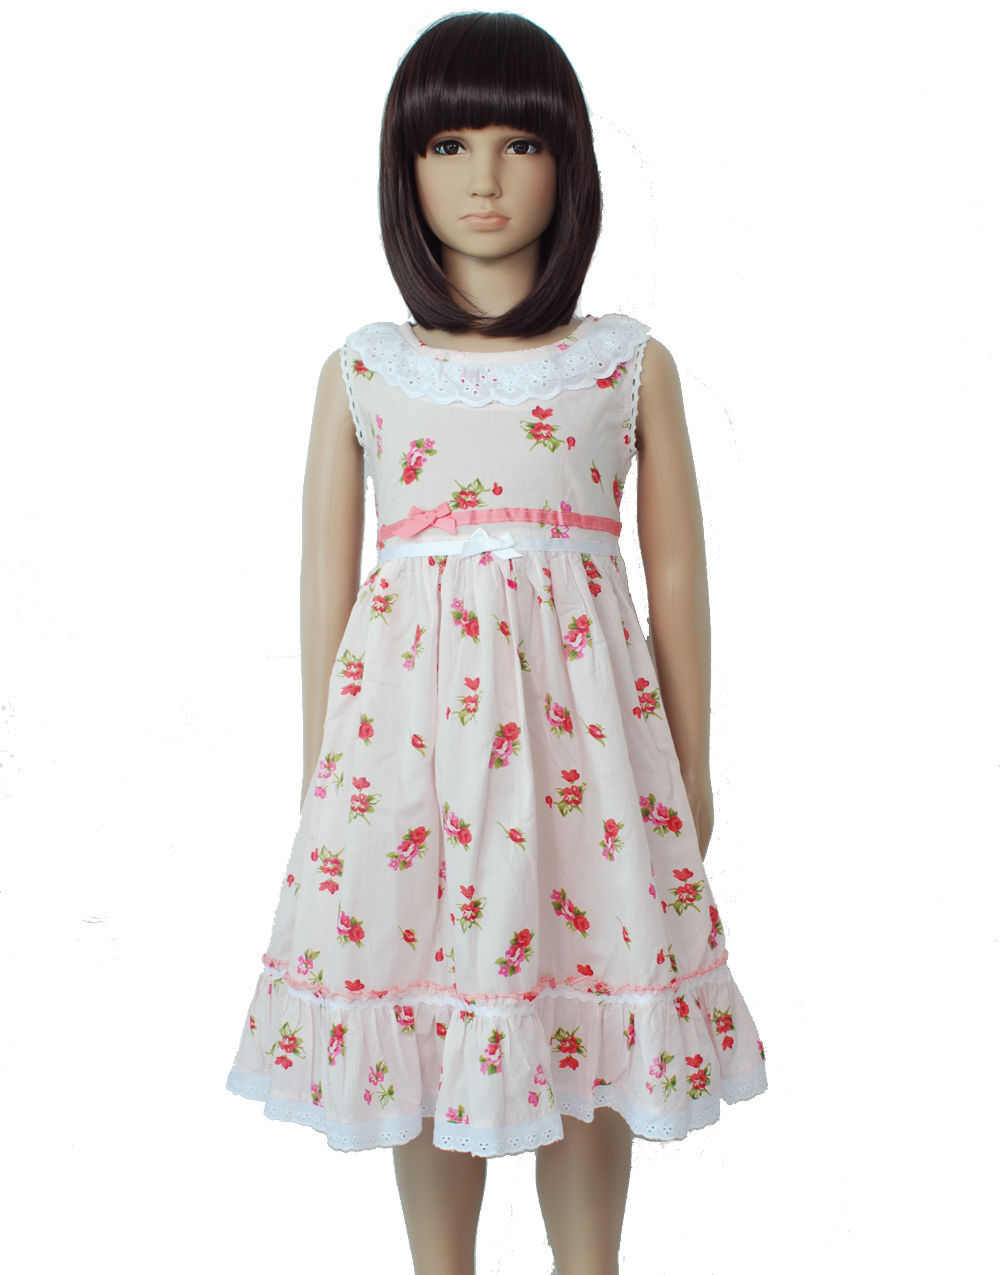 b3c53eeb082e3 New Girls Pink Floral Cotton Party Dress and 50 similar items